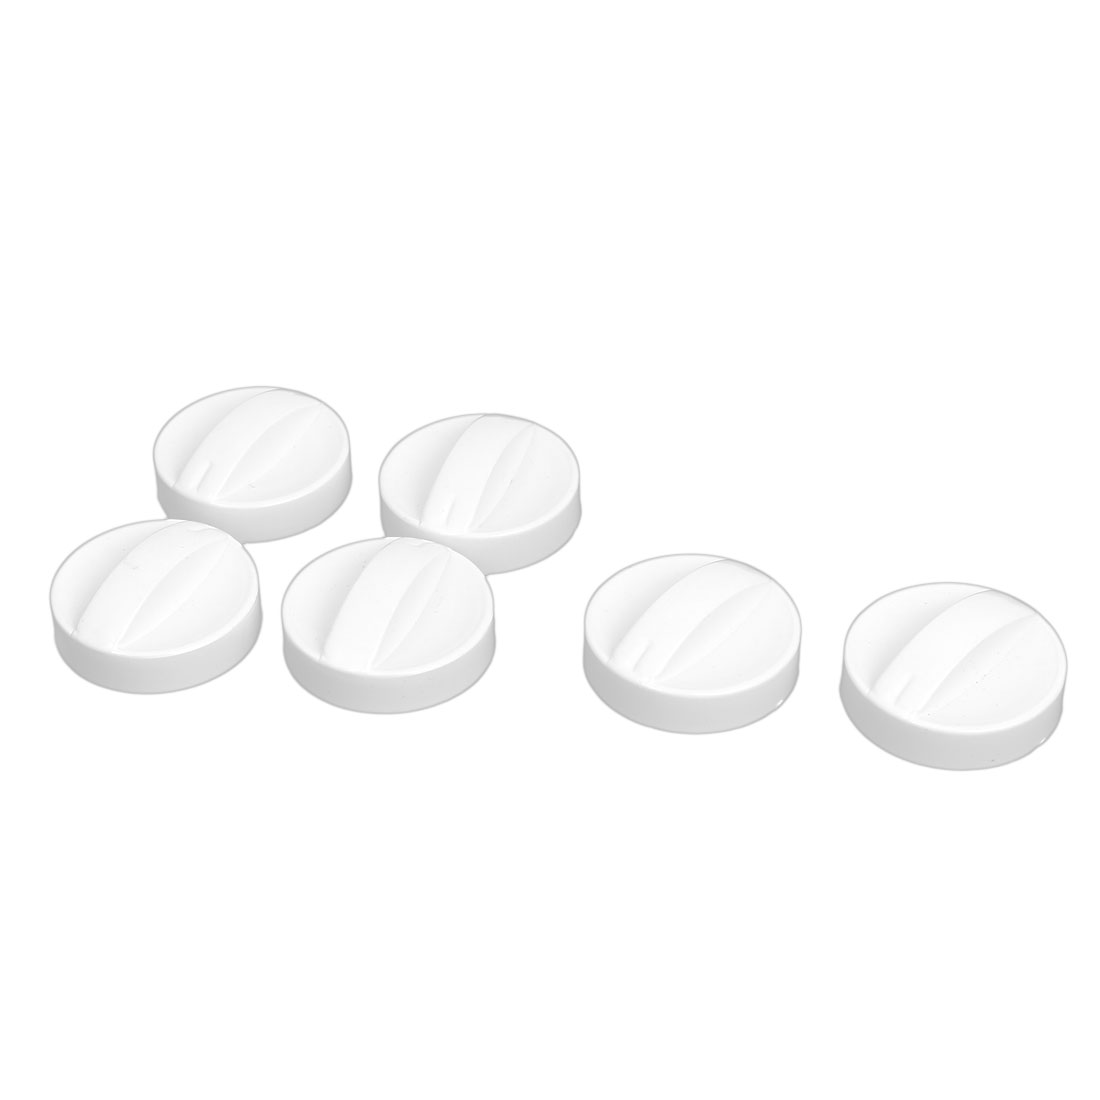 6mm Hole Dia Plastic Washing Machine Dryer Washer Timer Control Knob White 6Pcs